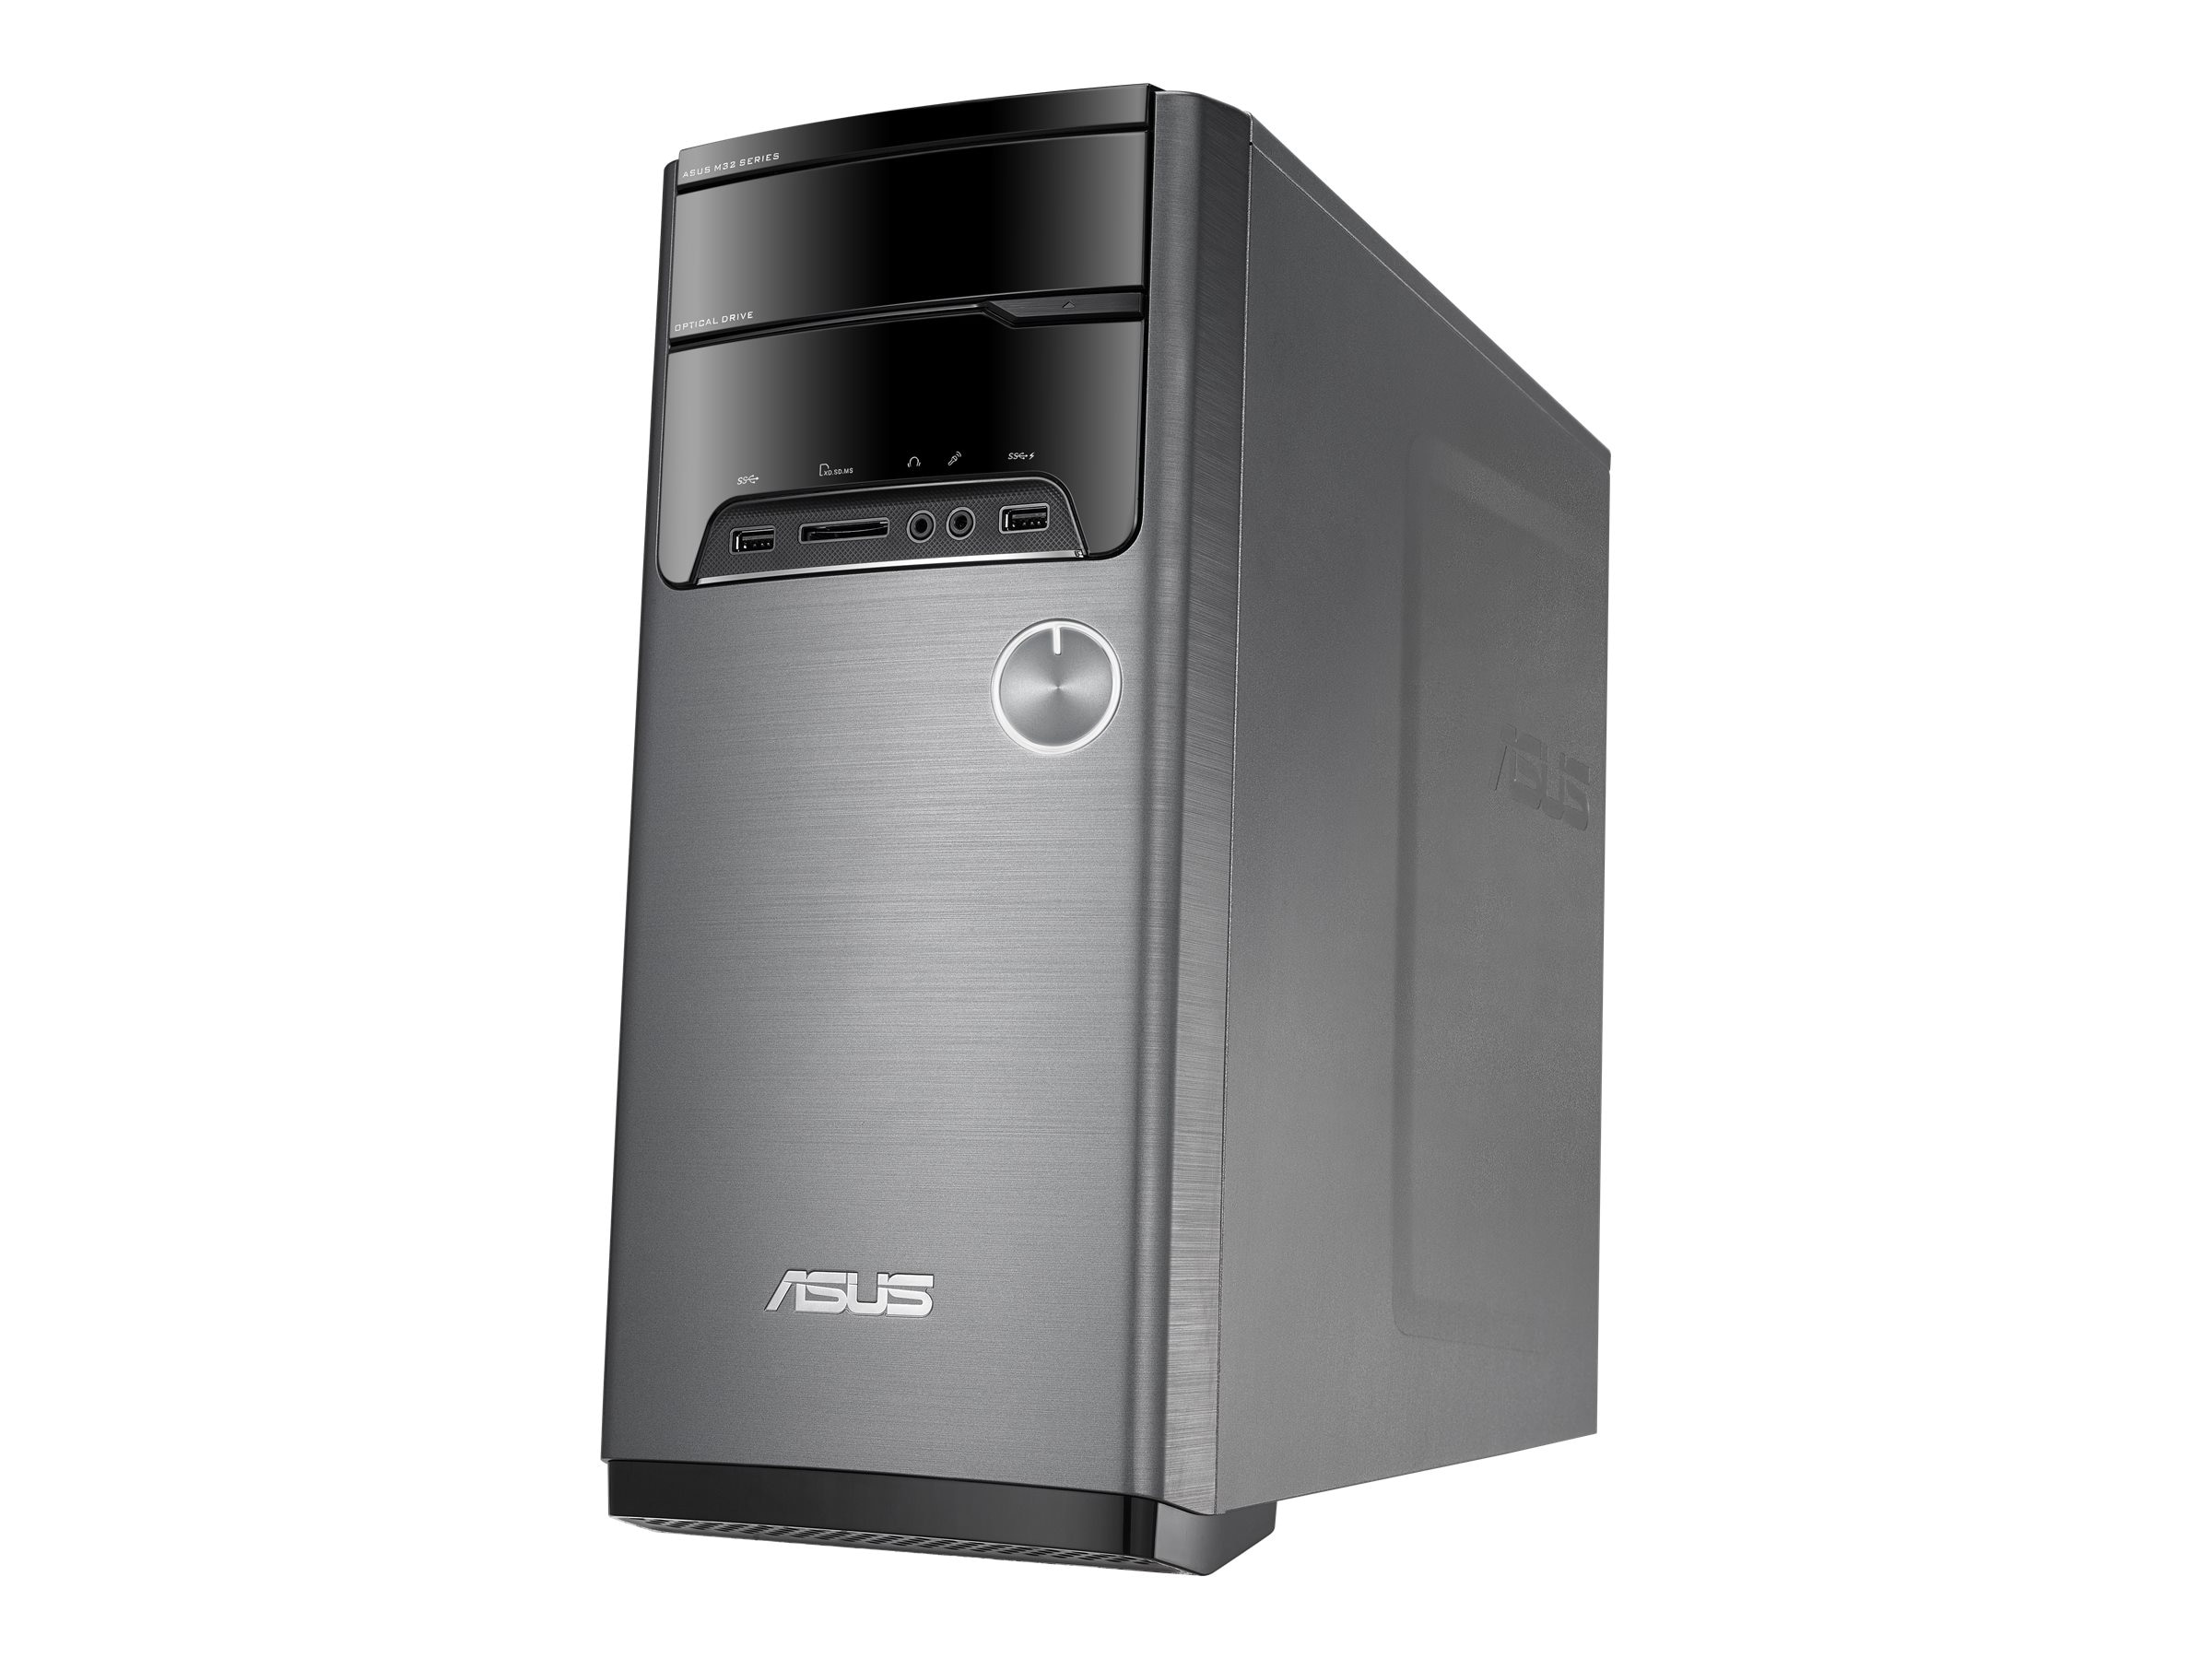 Asus Desktop PC AMD A8-6500 8GB 2TB, M32BF-US012S, 17794046, Desktops